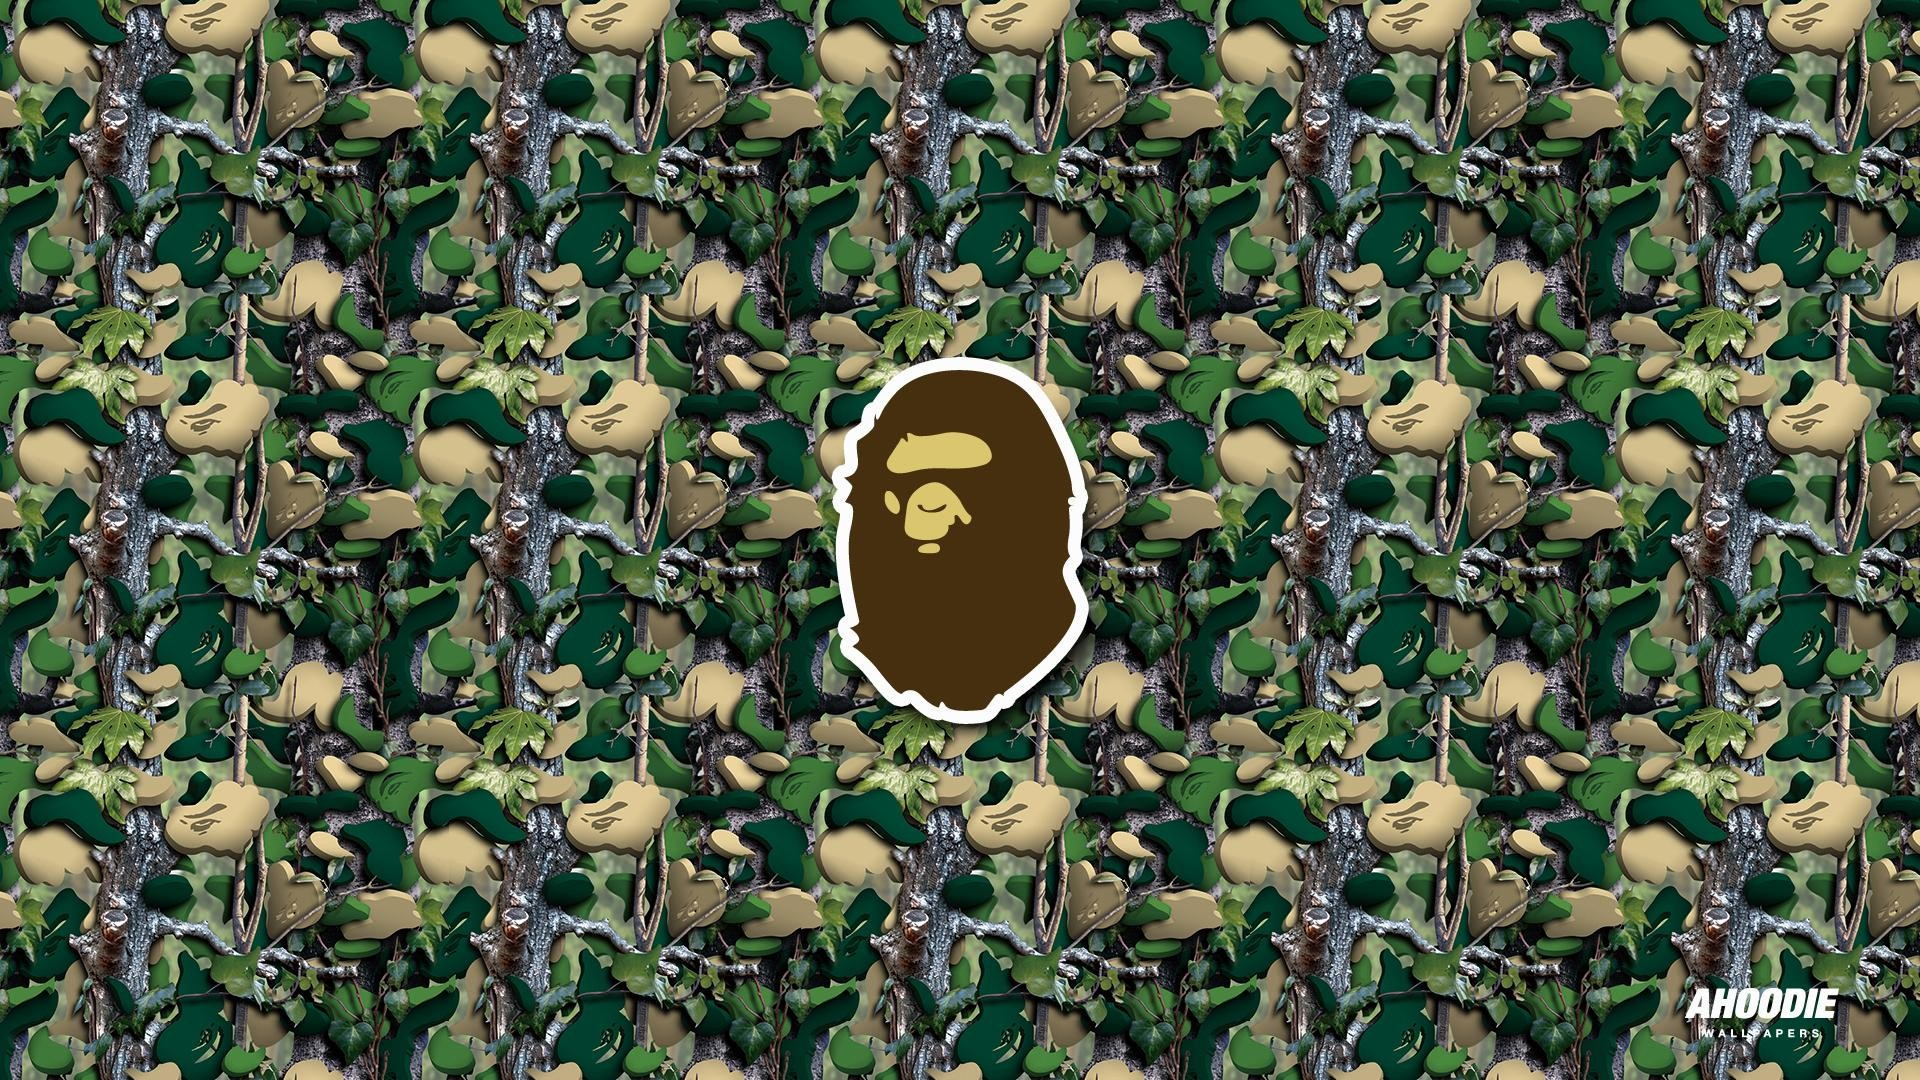 Res: 1920x1080, 4. bathing-ape-wallpaper4-600x338